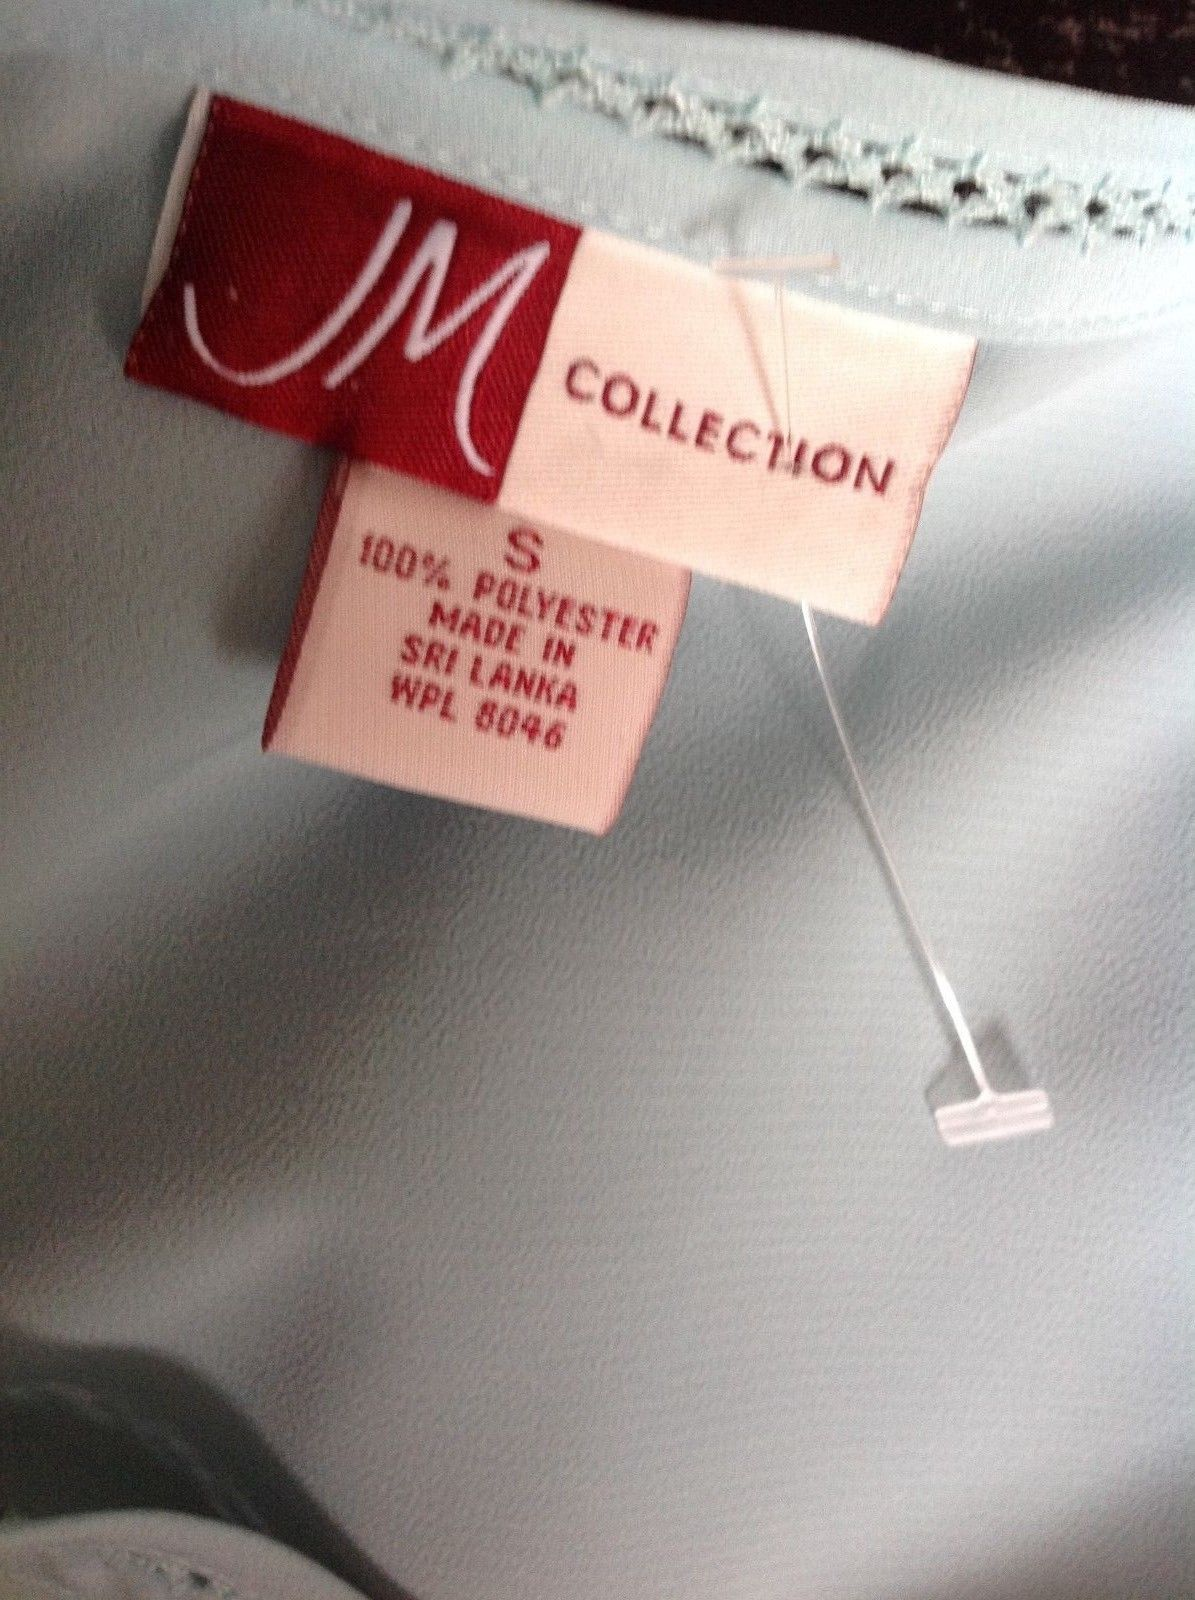 JM Collection Sleeveless Women's  Blouse Camisole Light Blue Size Small